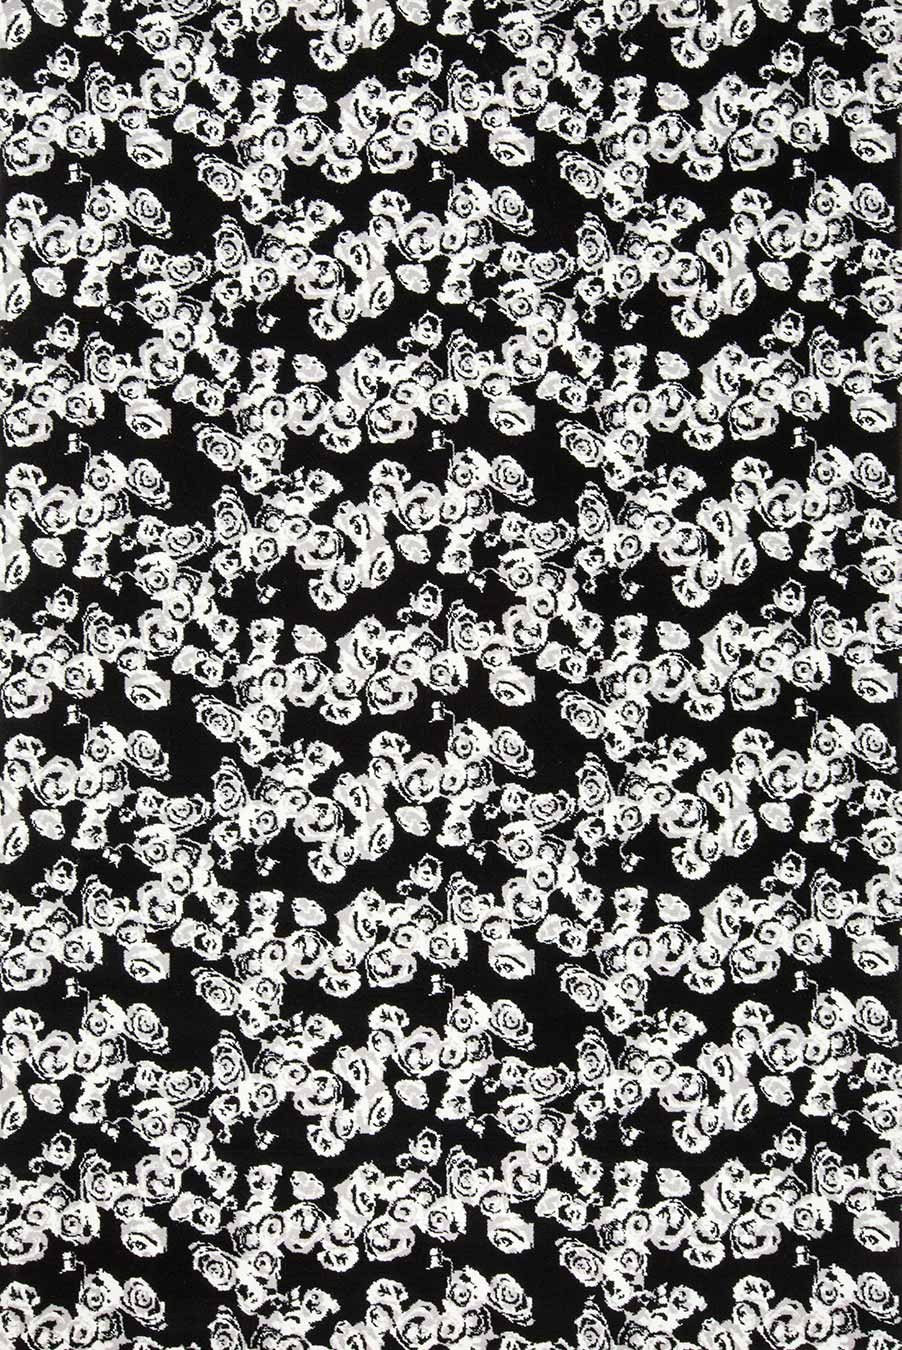 Overhead view of Iona black and white floral Axminster carpet